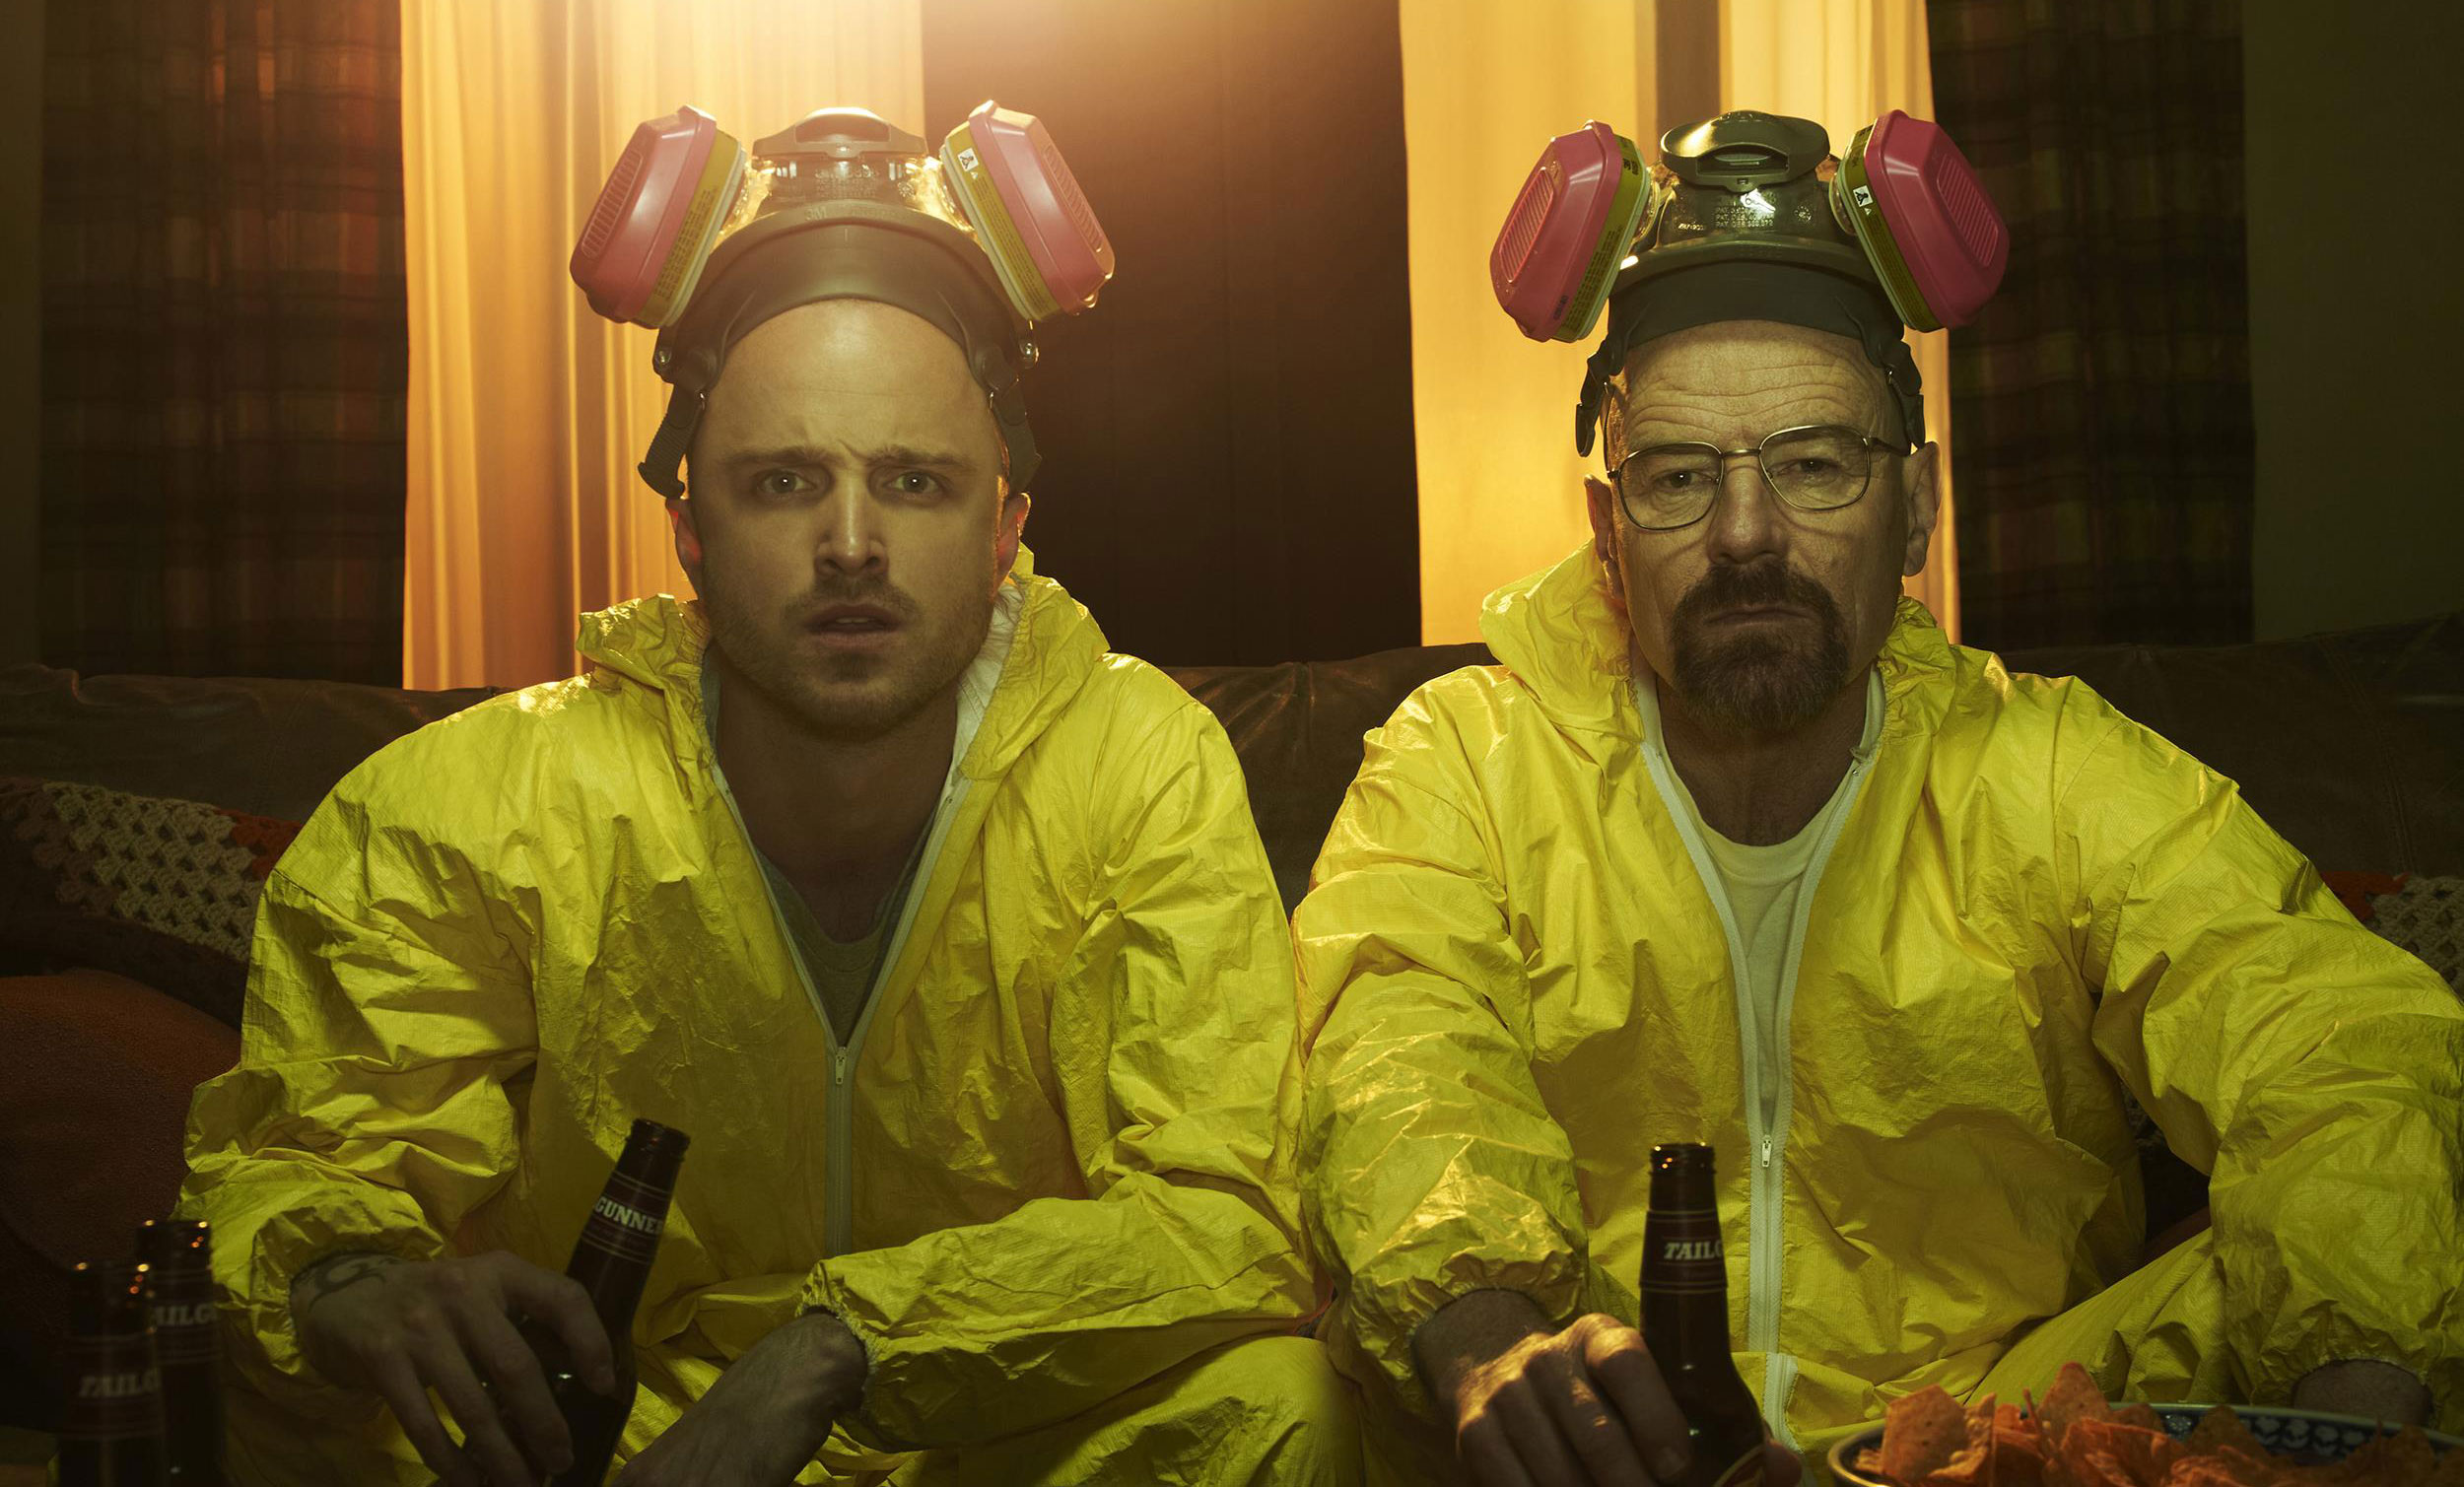 breaking bad news to family and New guidelines help people just diagnosed with cancer break the bad news to friends, family, and other loved ones.